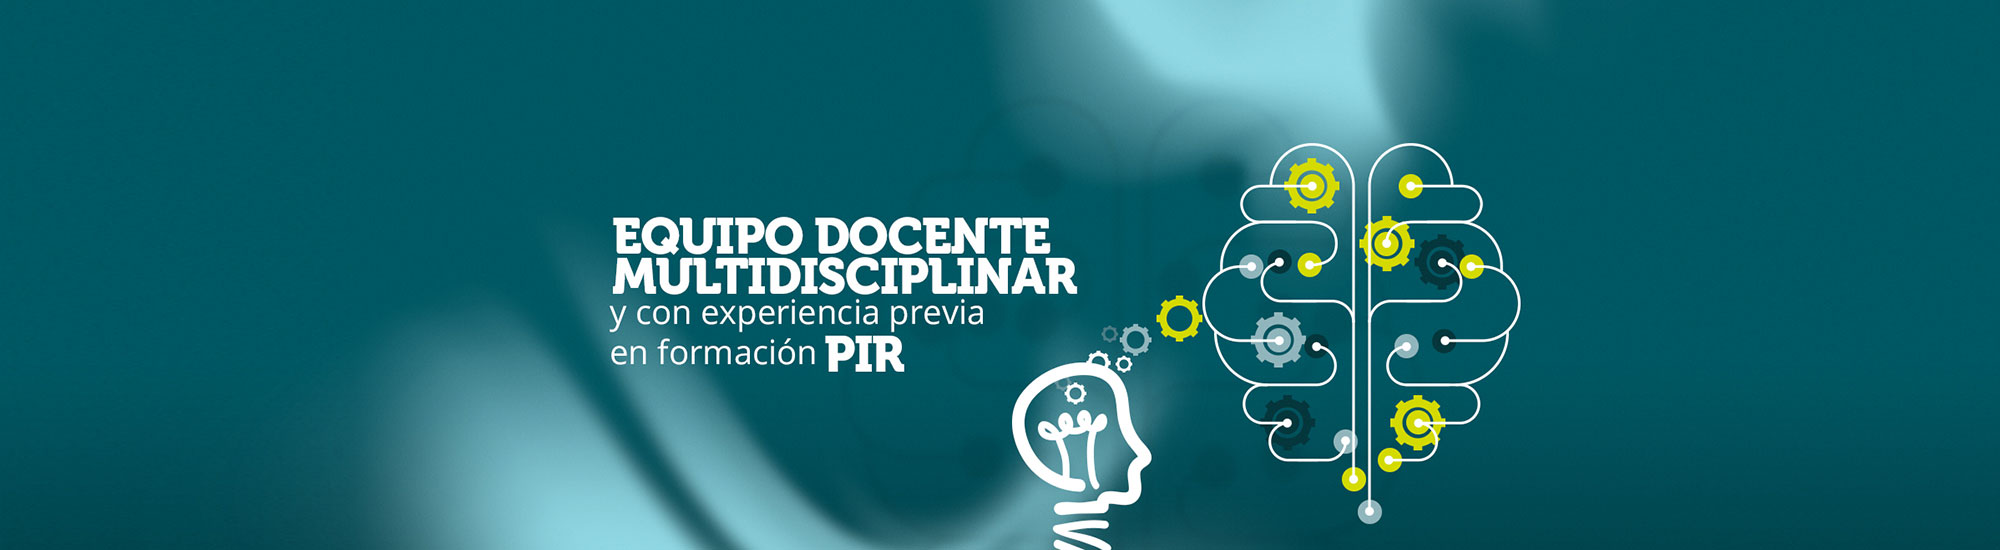 02_equipo-docente